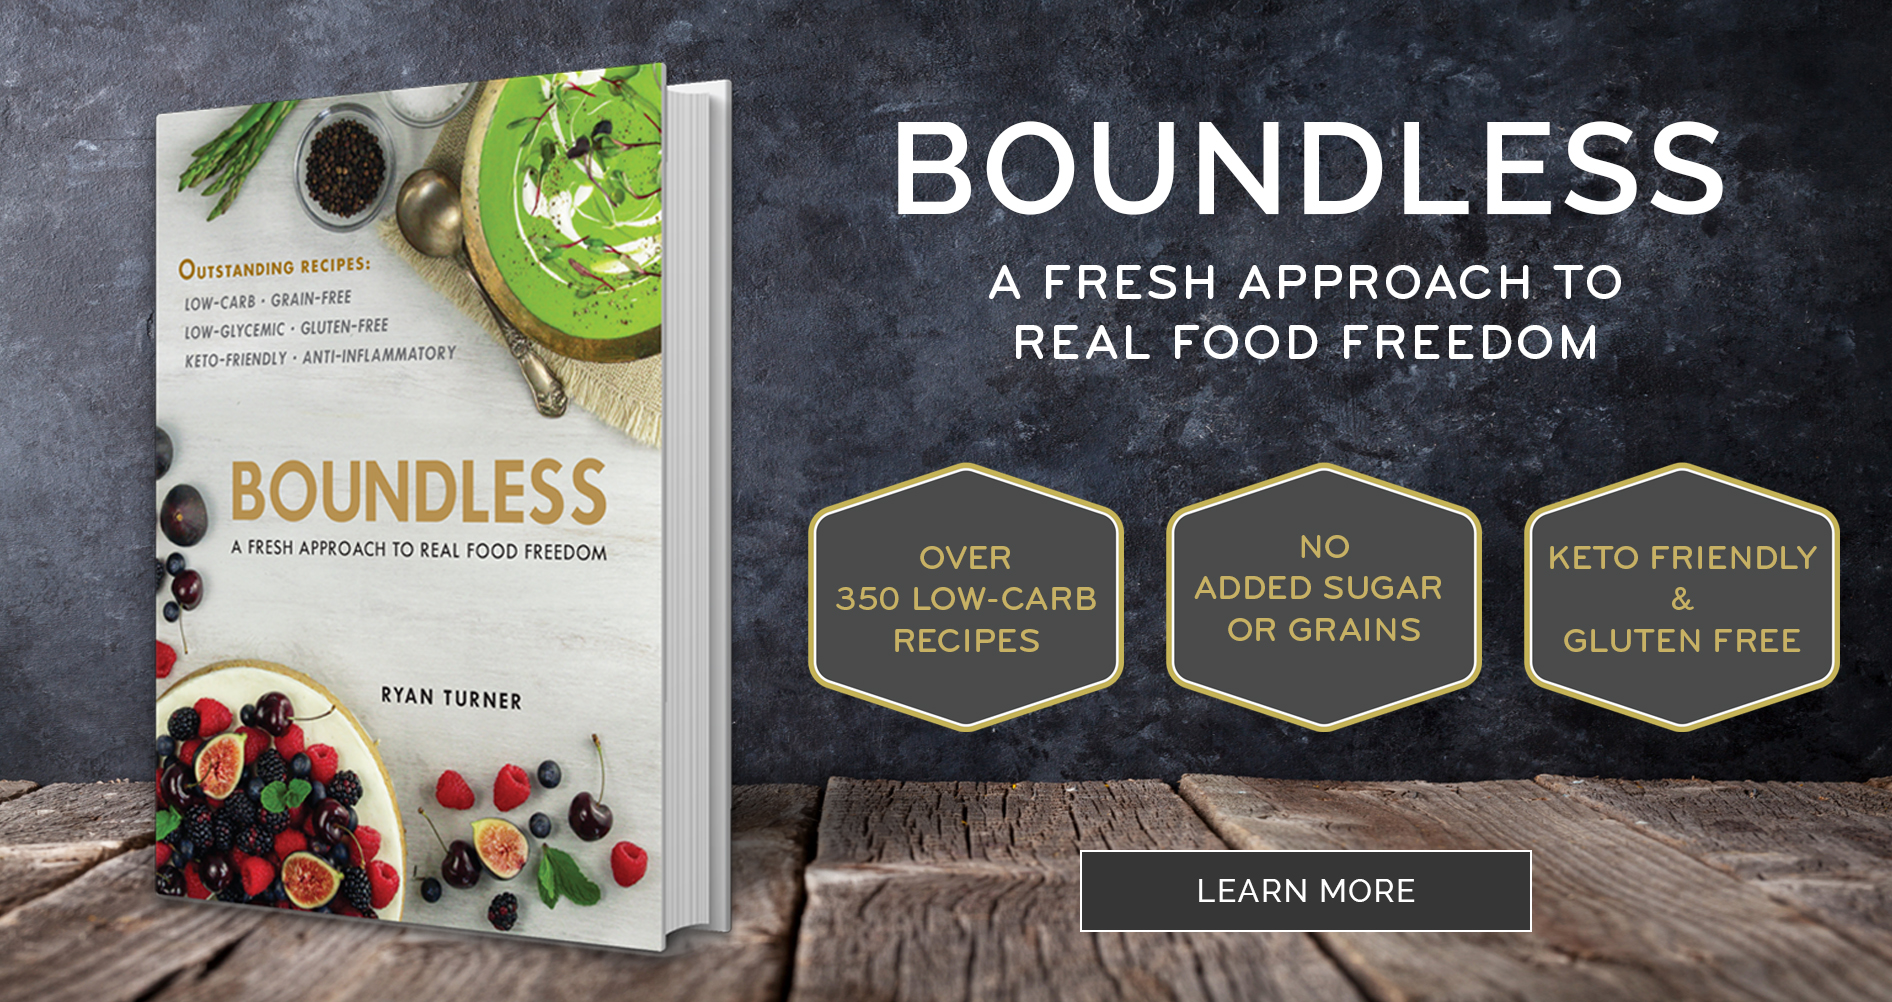 THE BEST LOW CARB COOKBOOK - BOUNDLESS BY CHEF RYAN TURNER.jpg